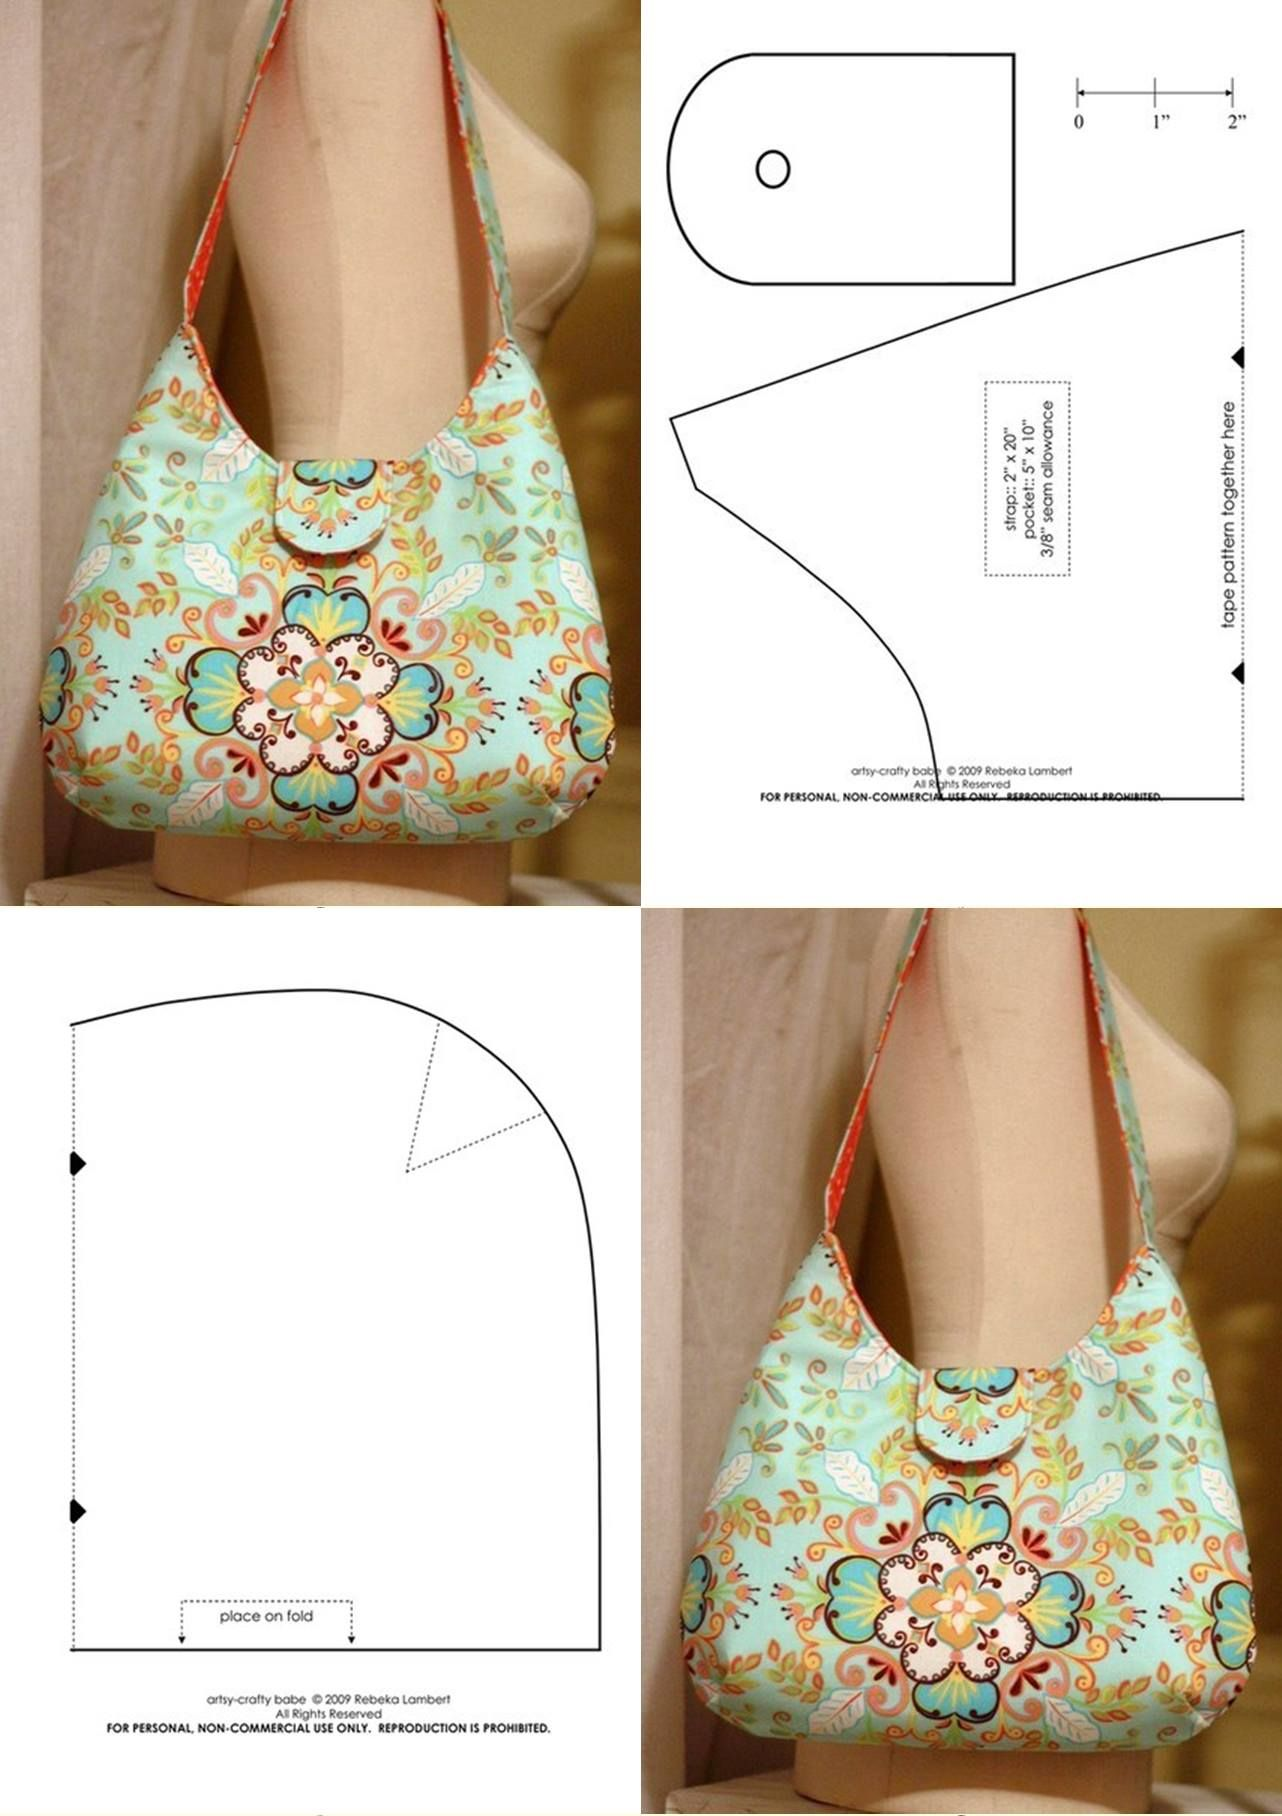 Pin by Patricia Wood on bags | Pinterest | Sewing, Bags and Bag ...